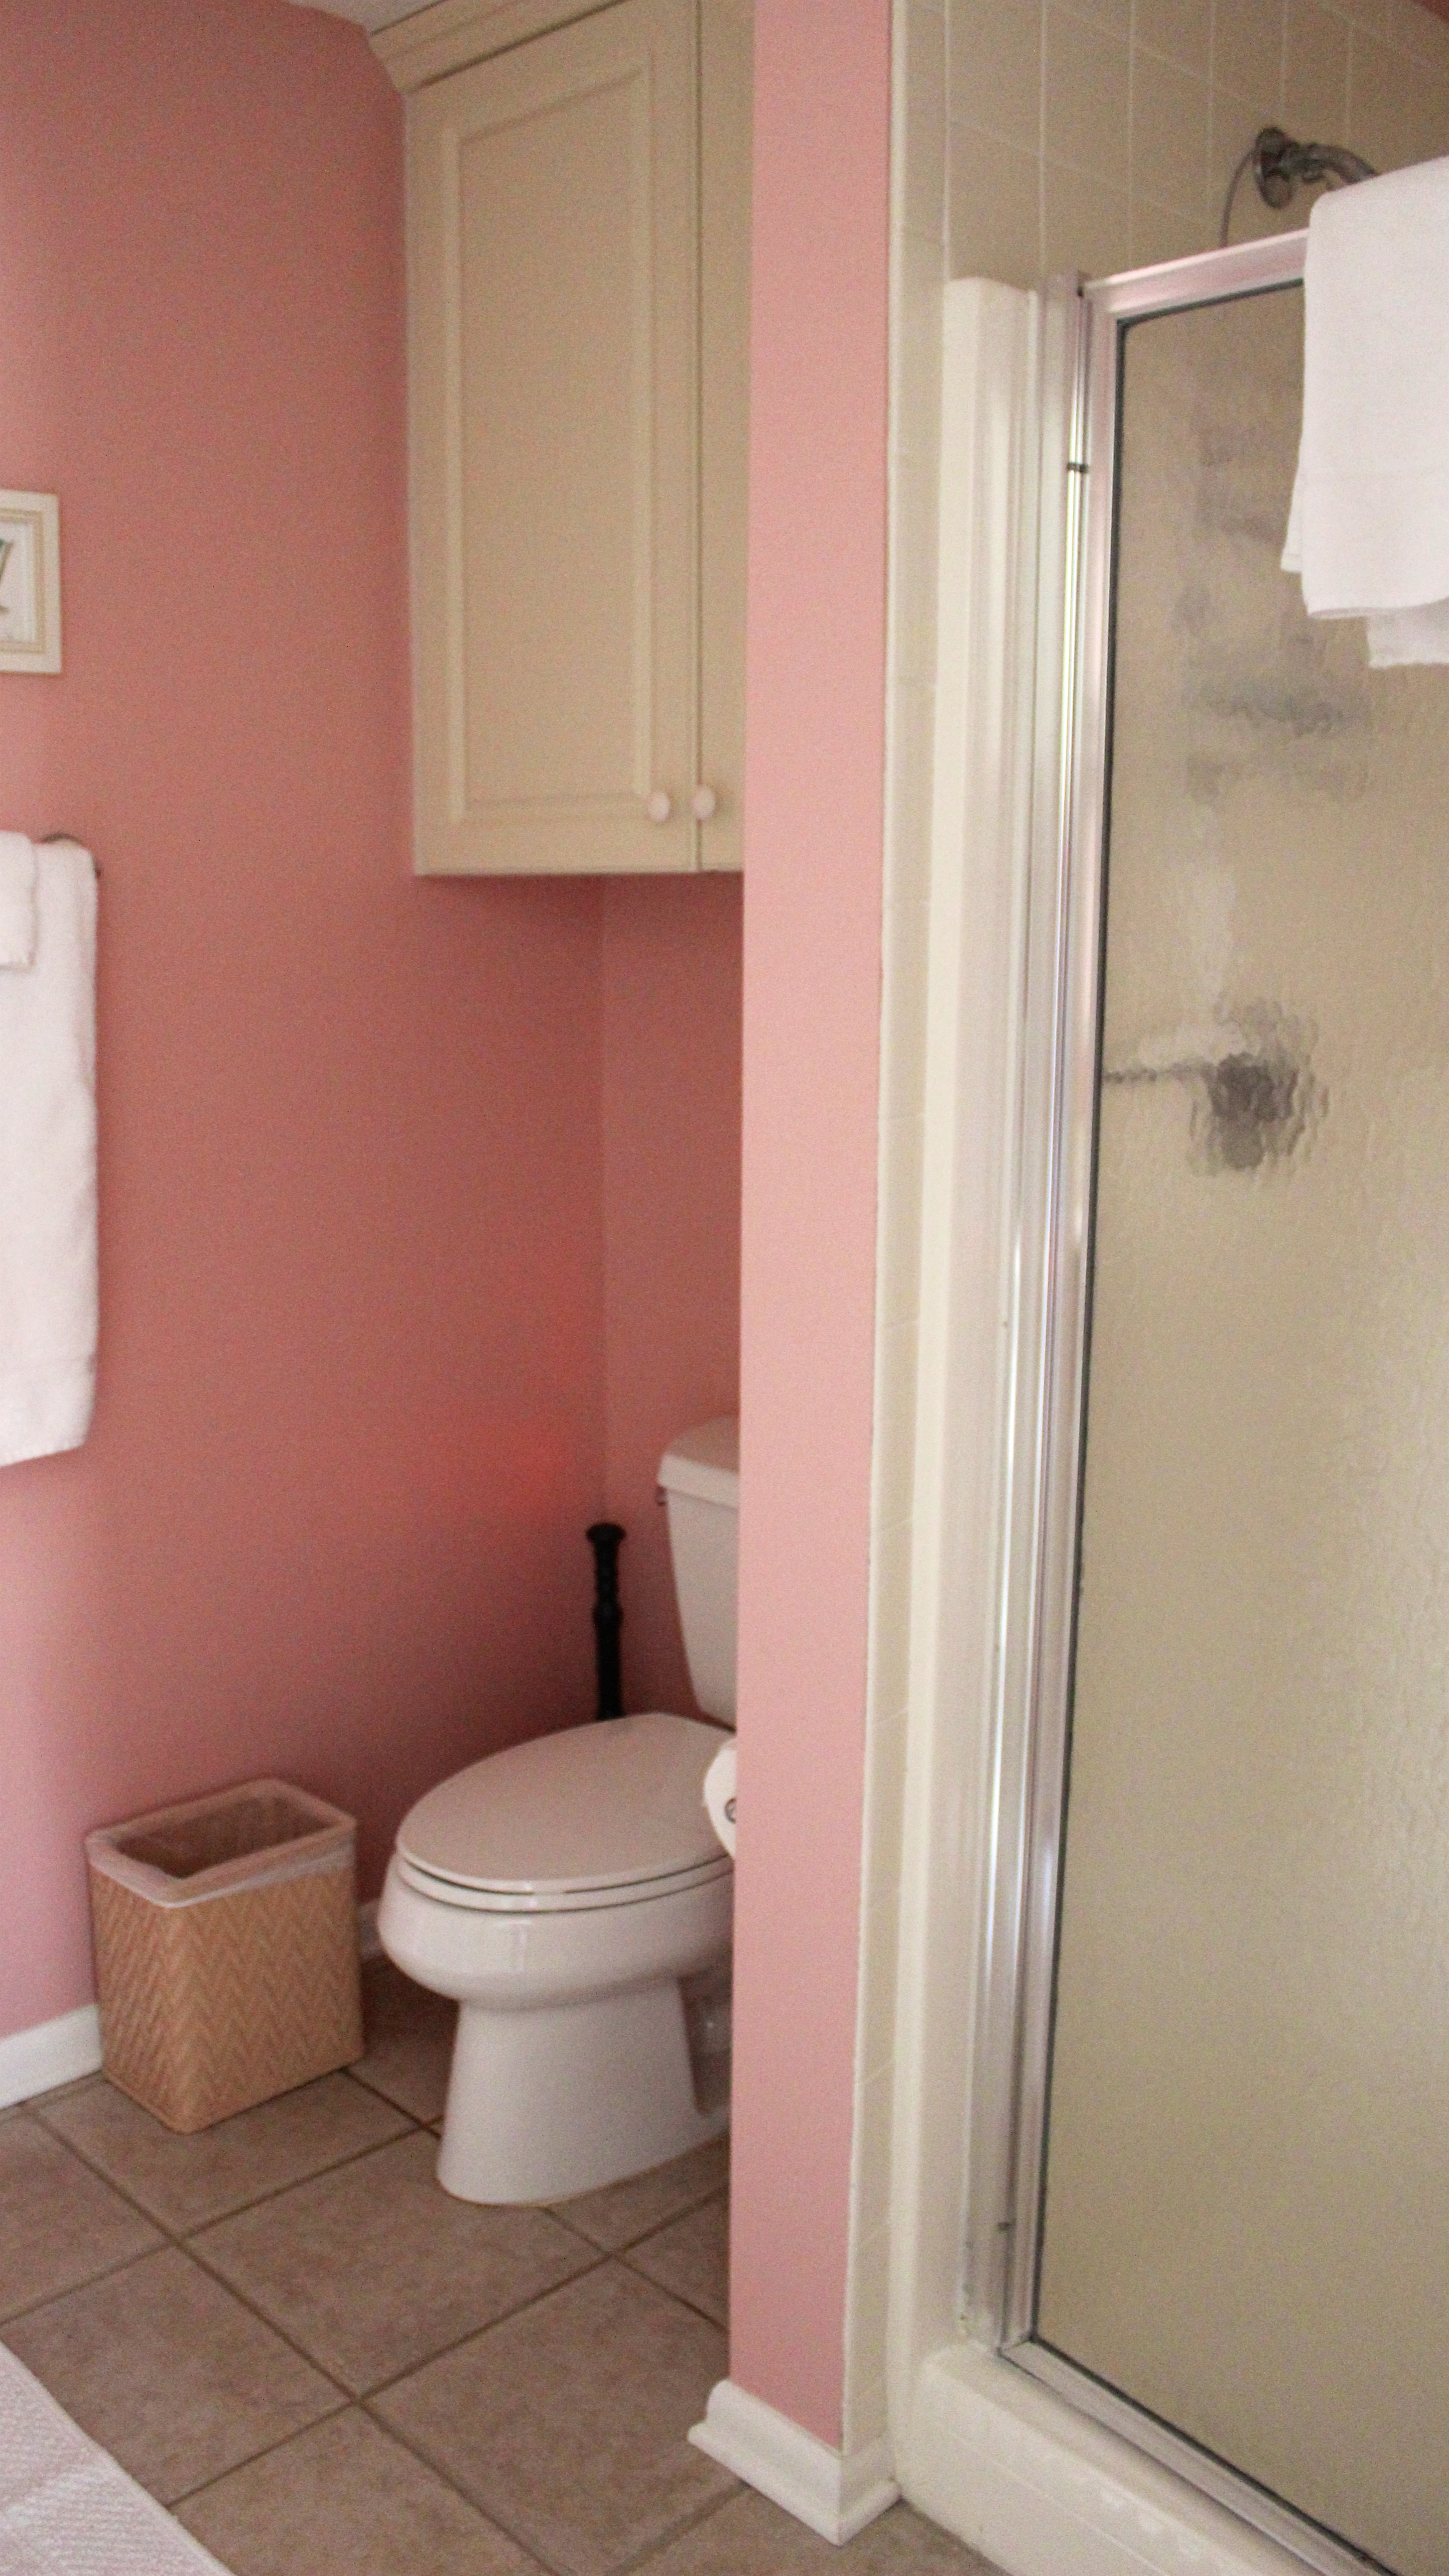 It also has a shower and tile flooring.